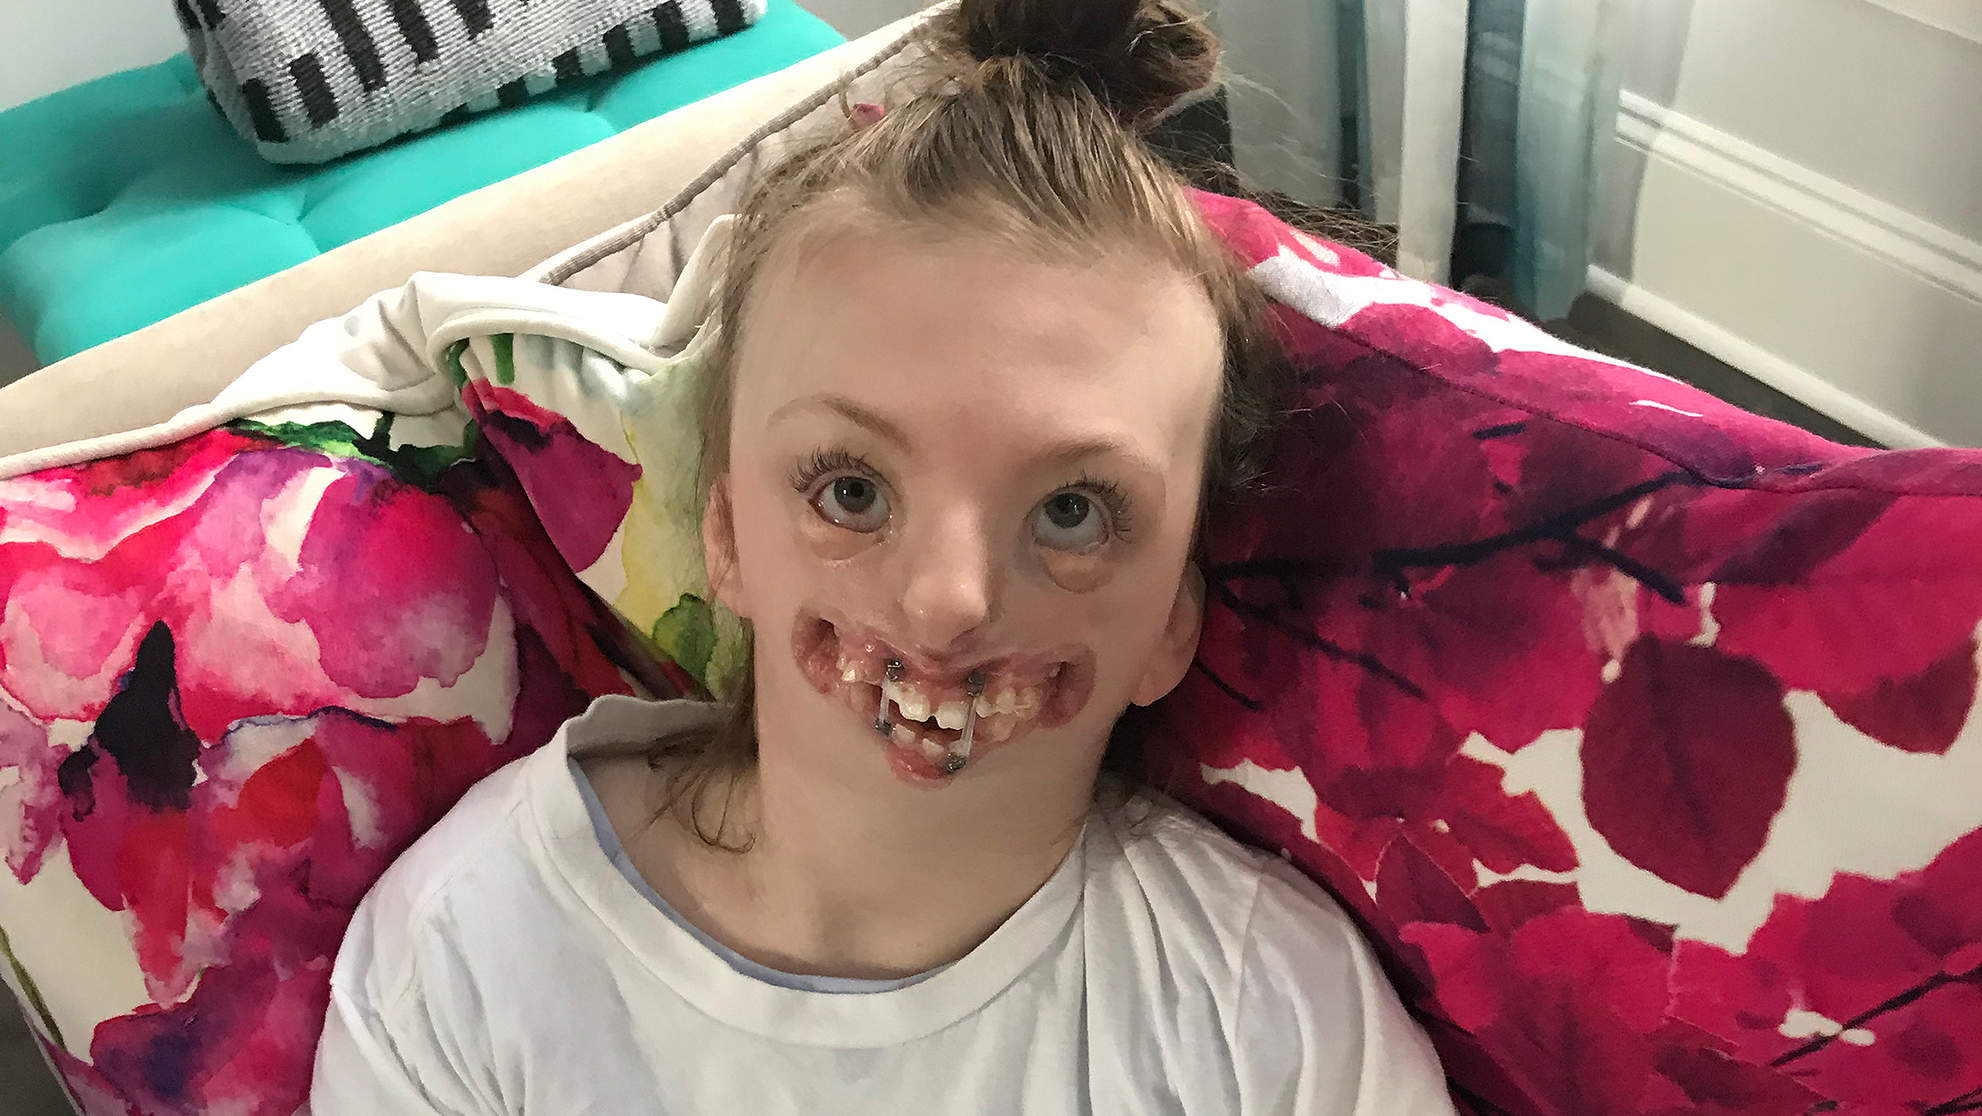 Parents of 10-Year-Old with Rare Condition Made Her Final Weeks Count: We Said 'Let's Have Fun'